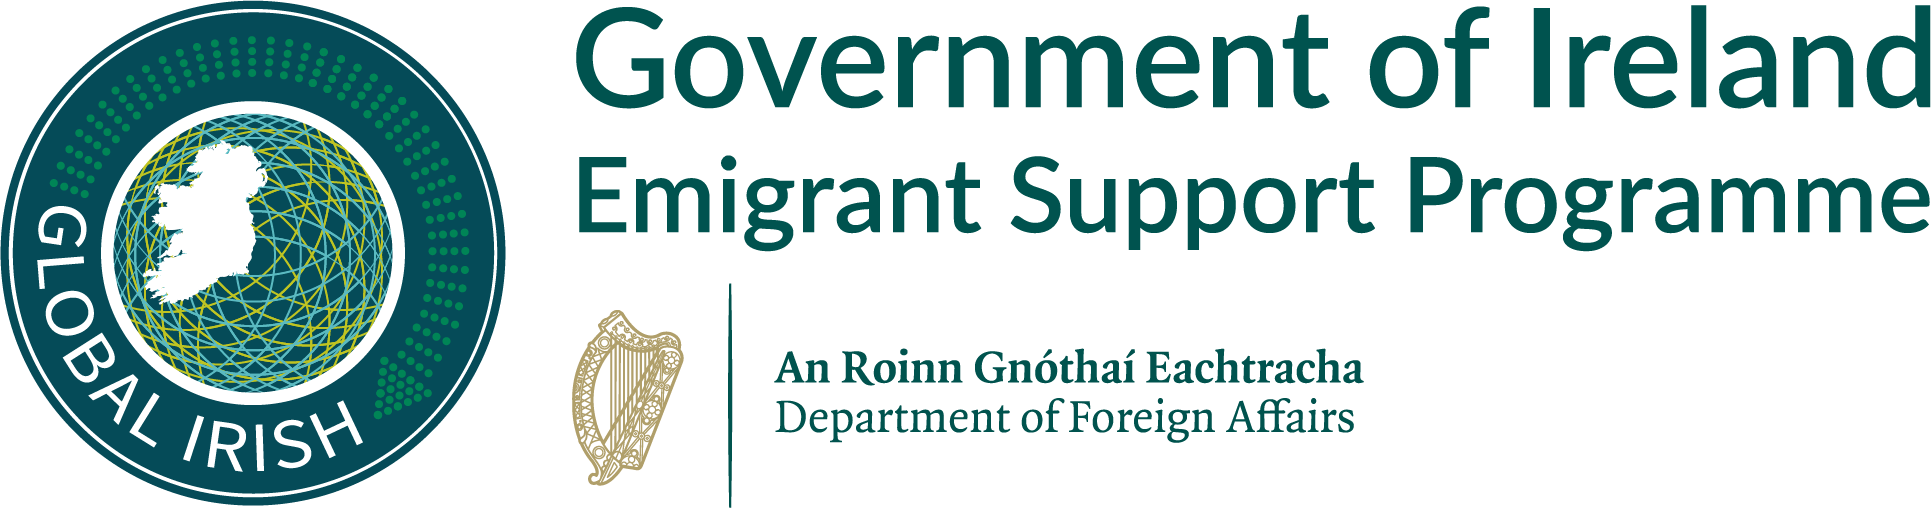 Government of Ireland Emigrant Support Programme